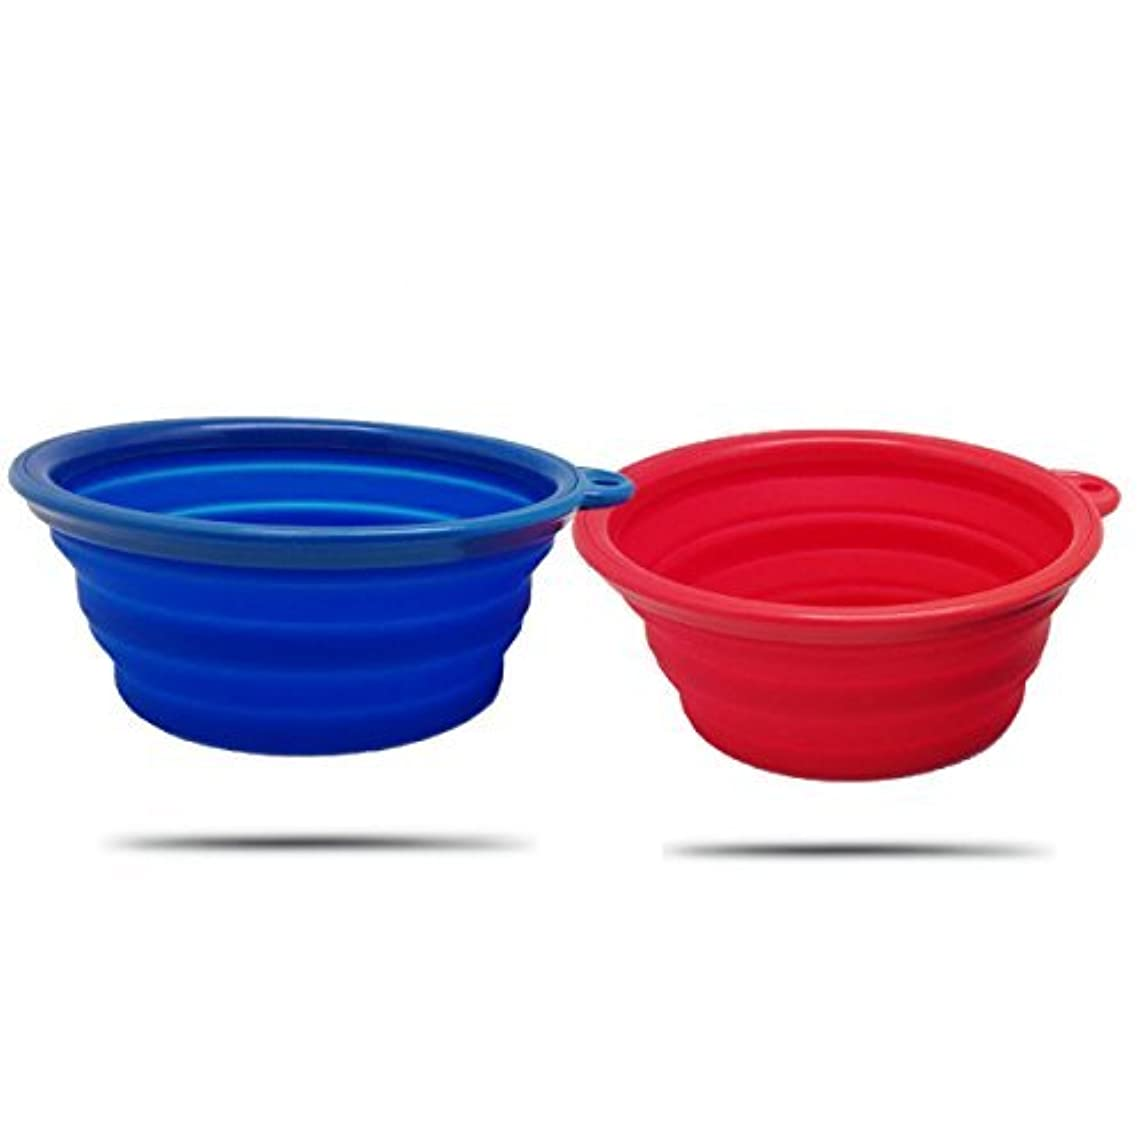 AZCAMP Collapsible Dog Bowls (2-Pack), for Camping and Travel/Outdoor Enthusiasts & Pet Lovers, Food-Grade Silicone, BPA-Free